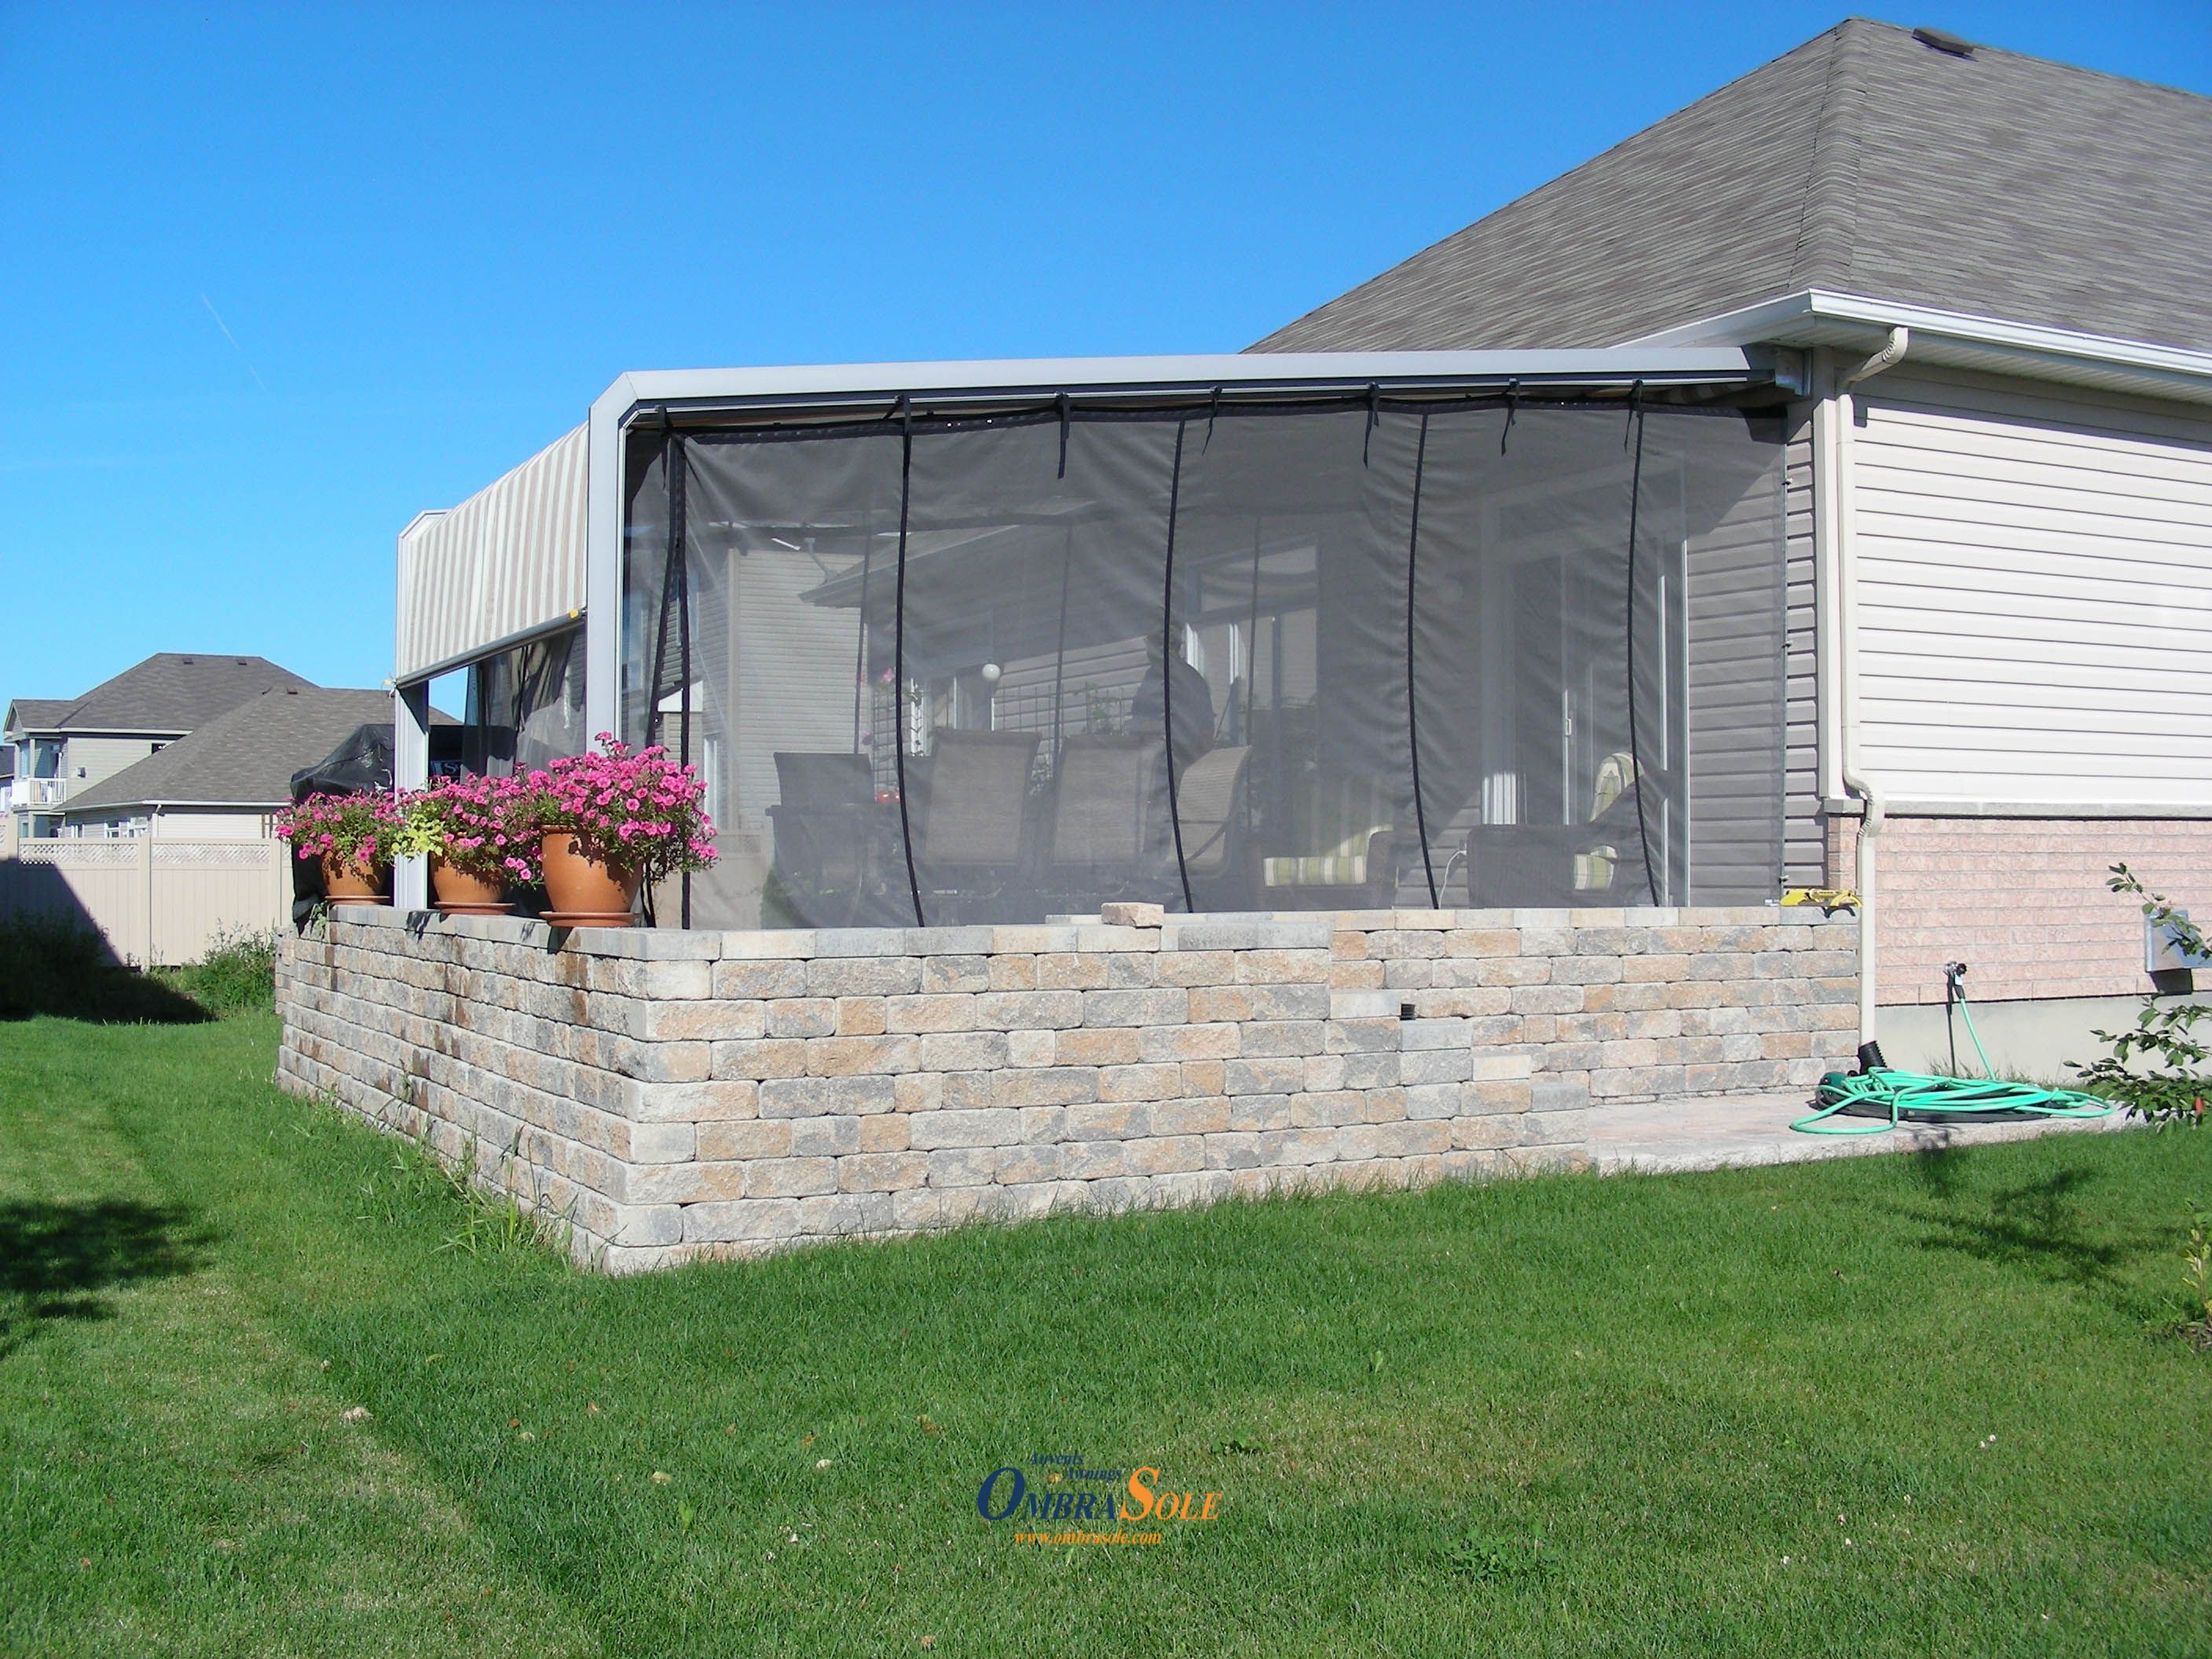 box suit awnings shade to awning mosquito sun net netting rv